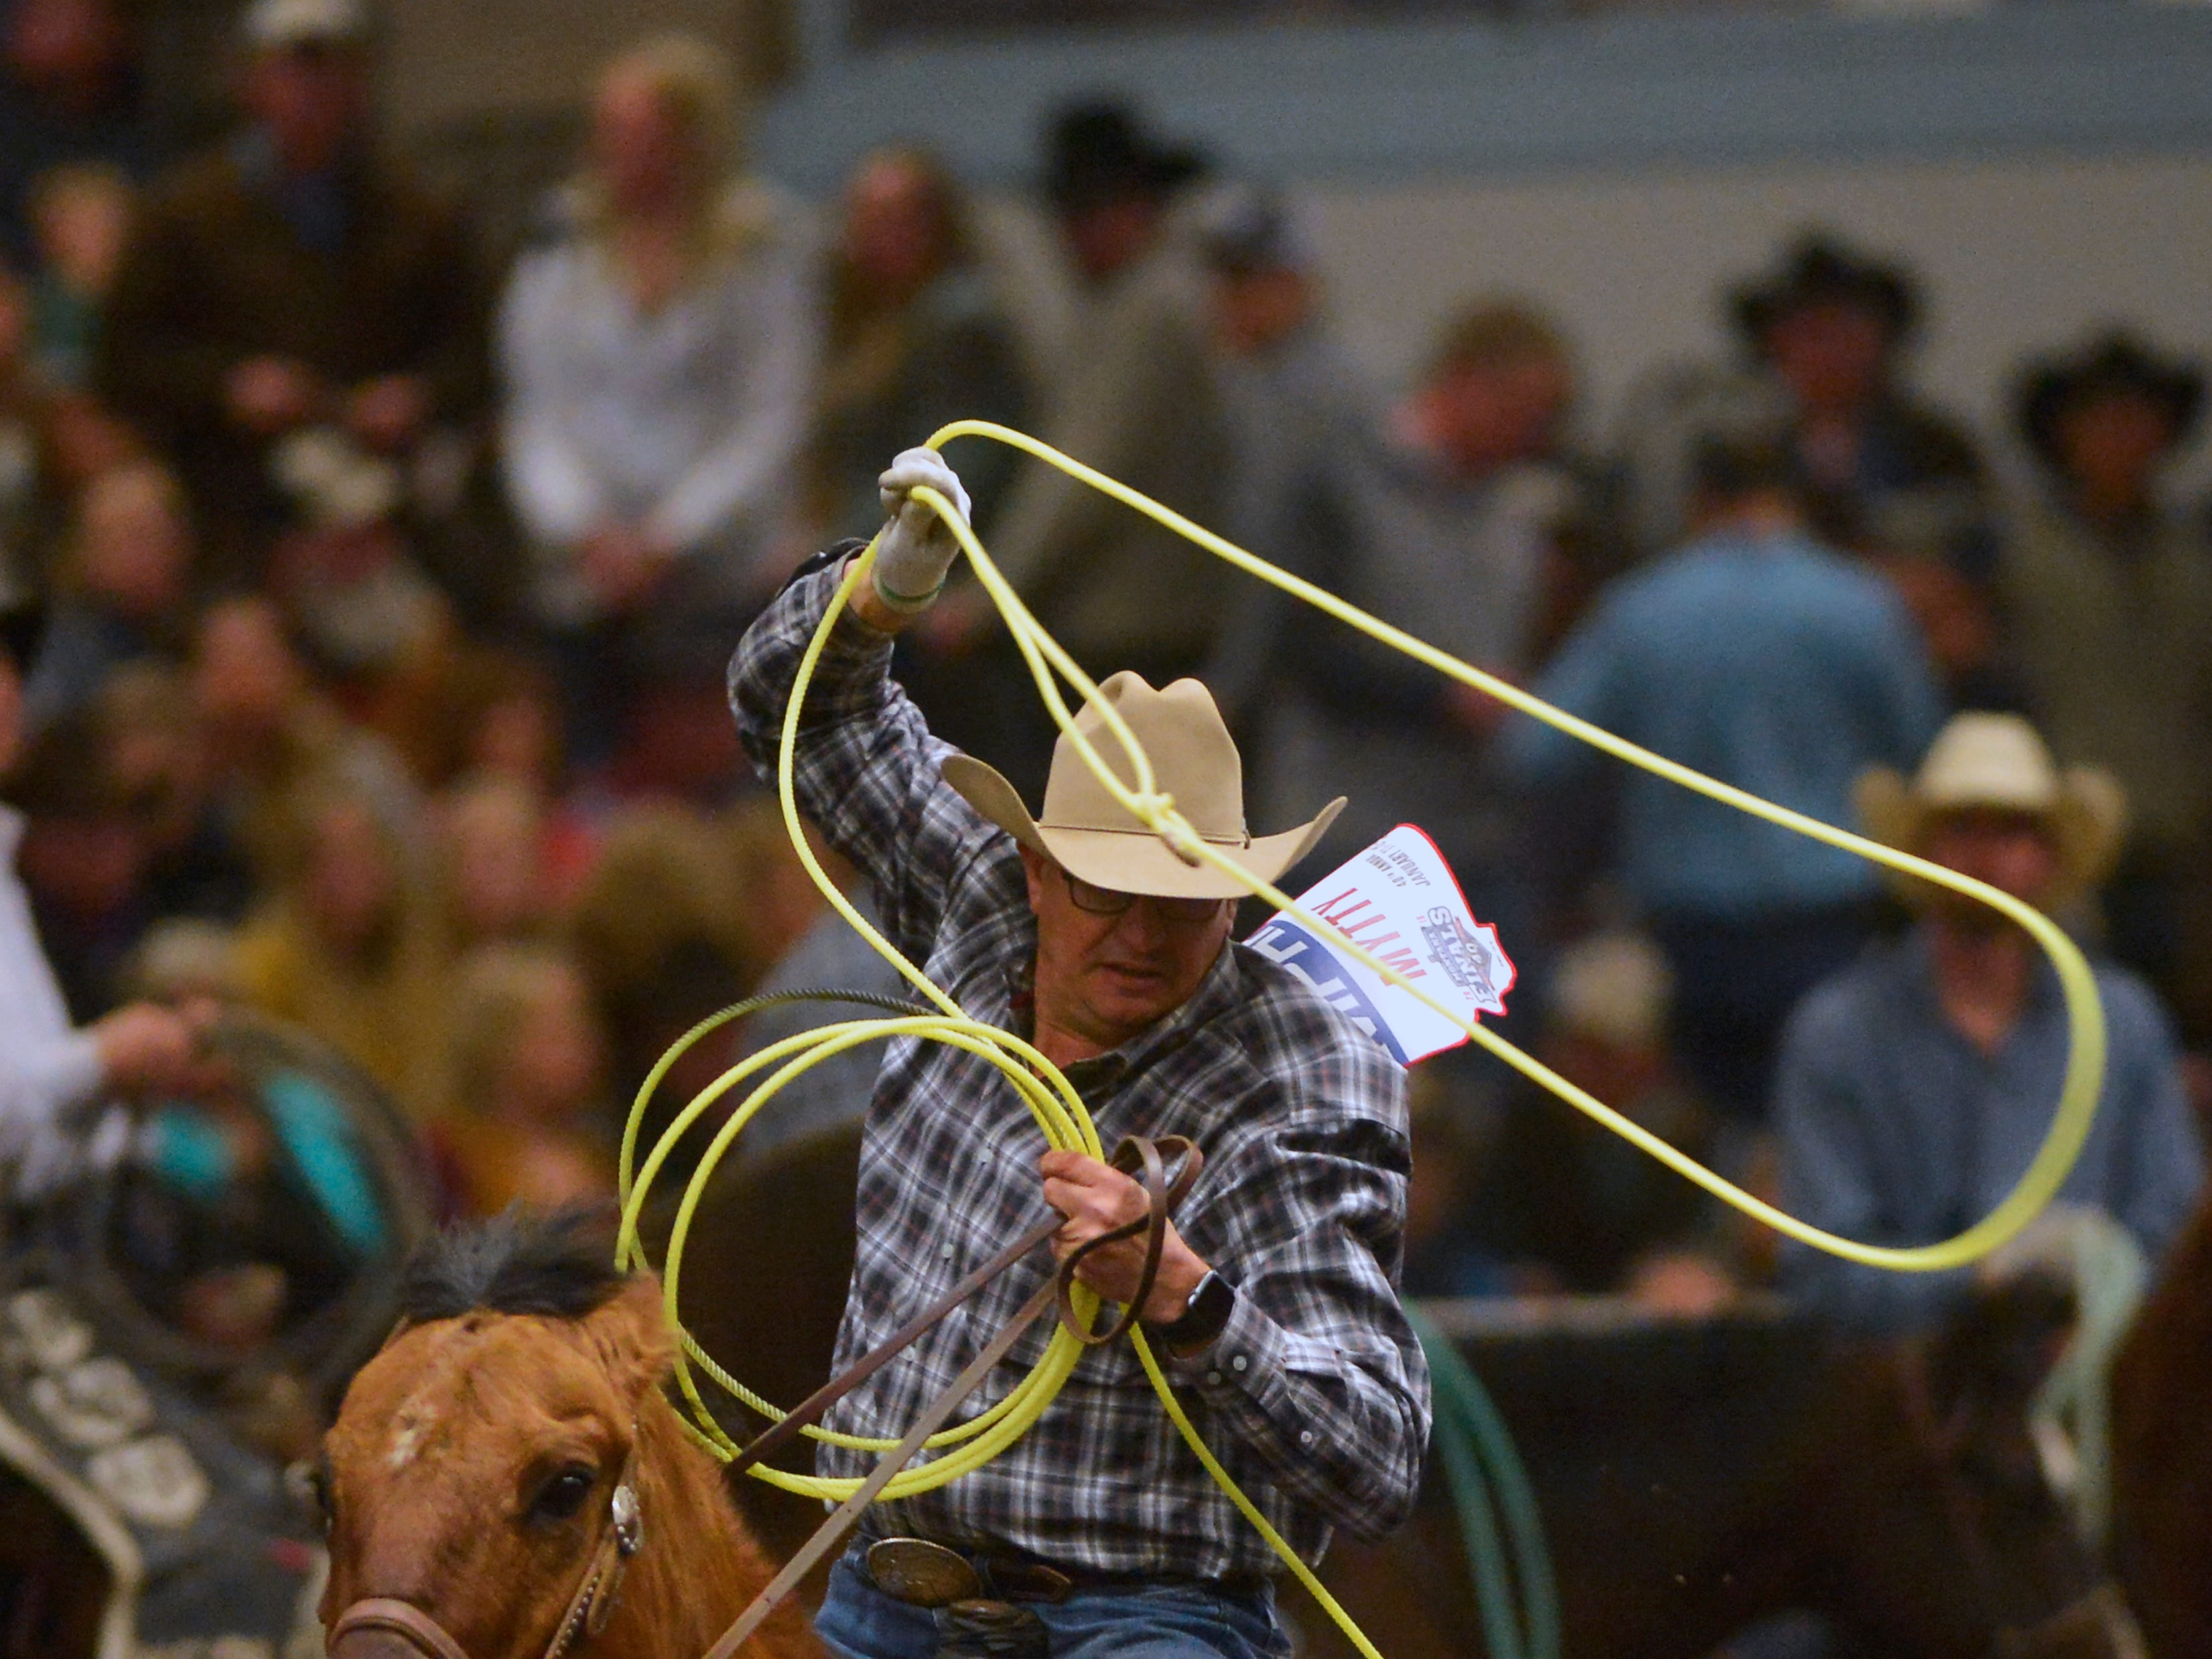 Kory Mytty competes in the team roping event during the Montana Pro Rodeo Circuit Finals in the Pacific Steel and Recycling Four Seasons Arena, Friday, January 11, 2019.